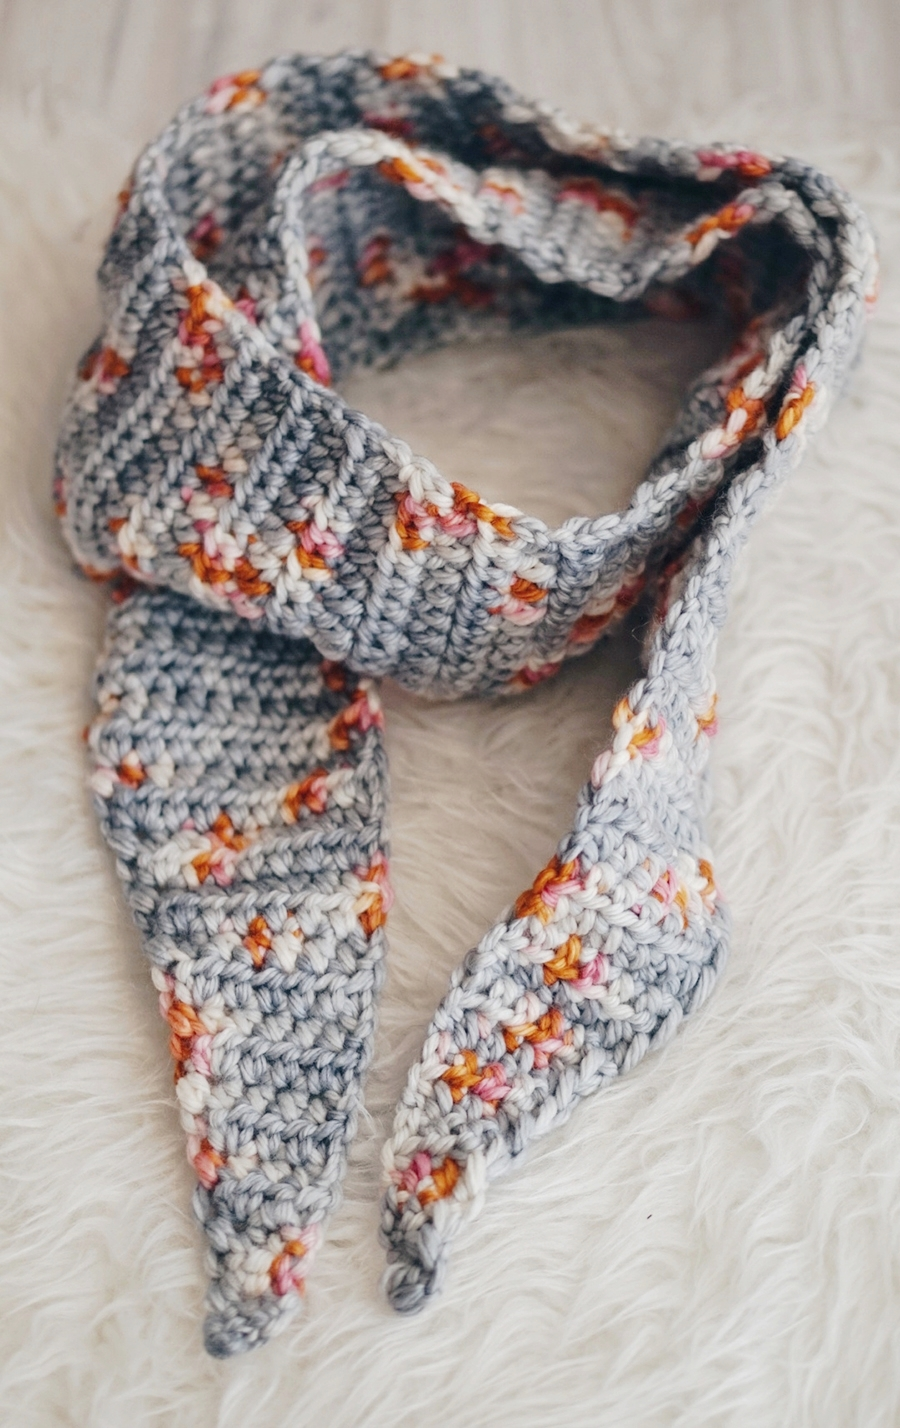 TIPPED CROCHET SCARF PATTERN WITH DELICIOUS YARNS | Little Things ...